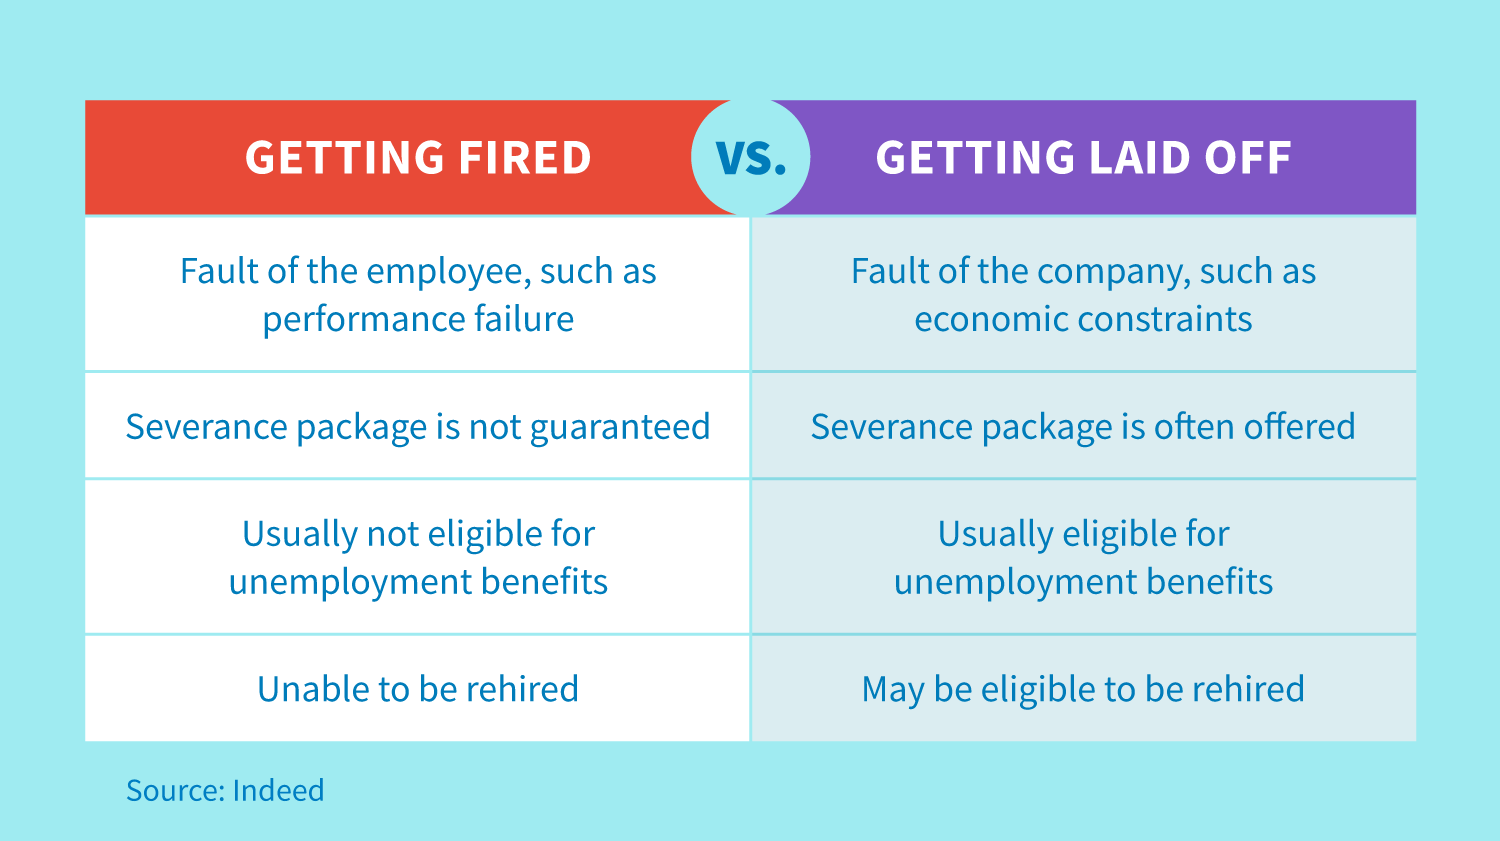 Getting fired is the fault of the employee, such as performance failure. A severage package is not guaranteed, and the employee is usually not eligible for unemployment benefits and is unable to be rehired. Getting laid off is the fault of the company, which often offers a severance package. The employee is usually eligible for unemployment benefits and they may be eligible to be rehired.